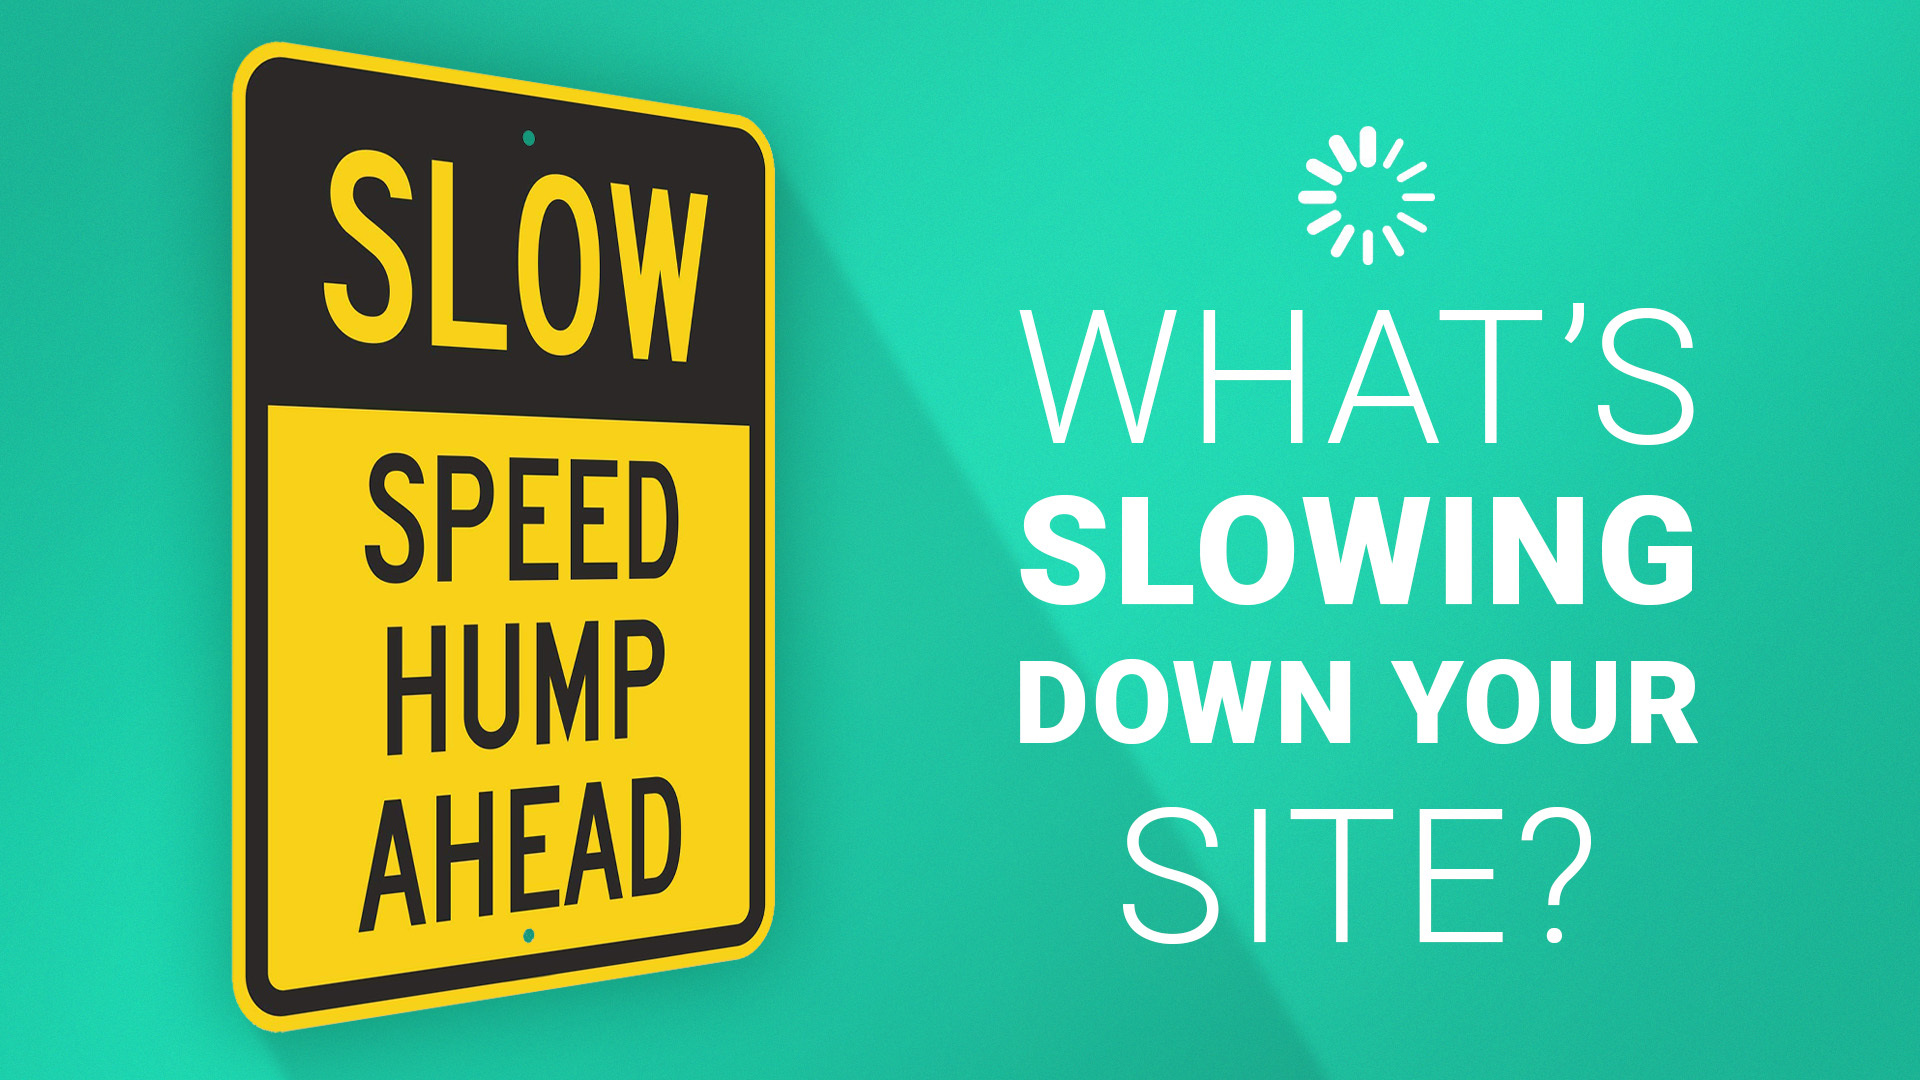 What's slowing down your site?